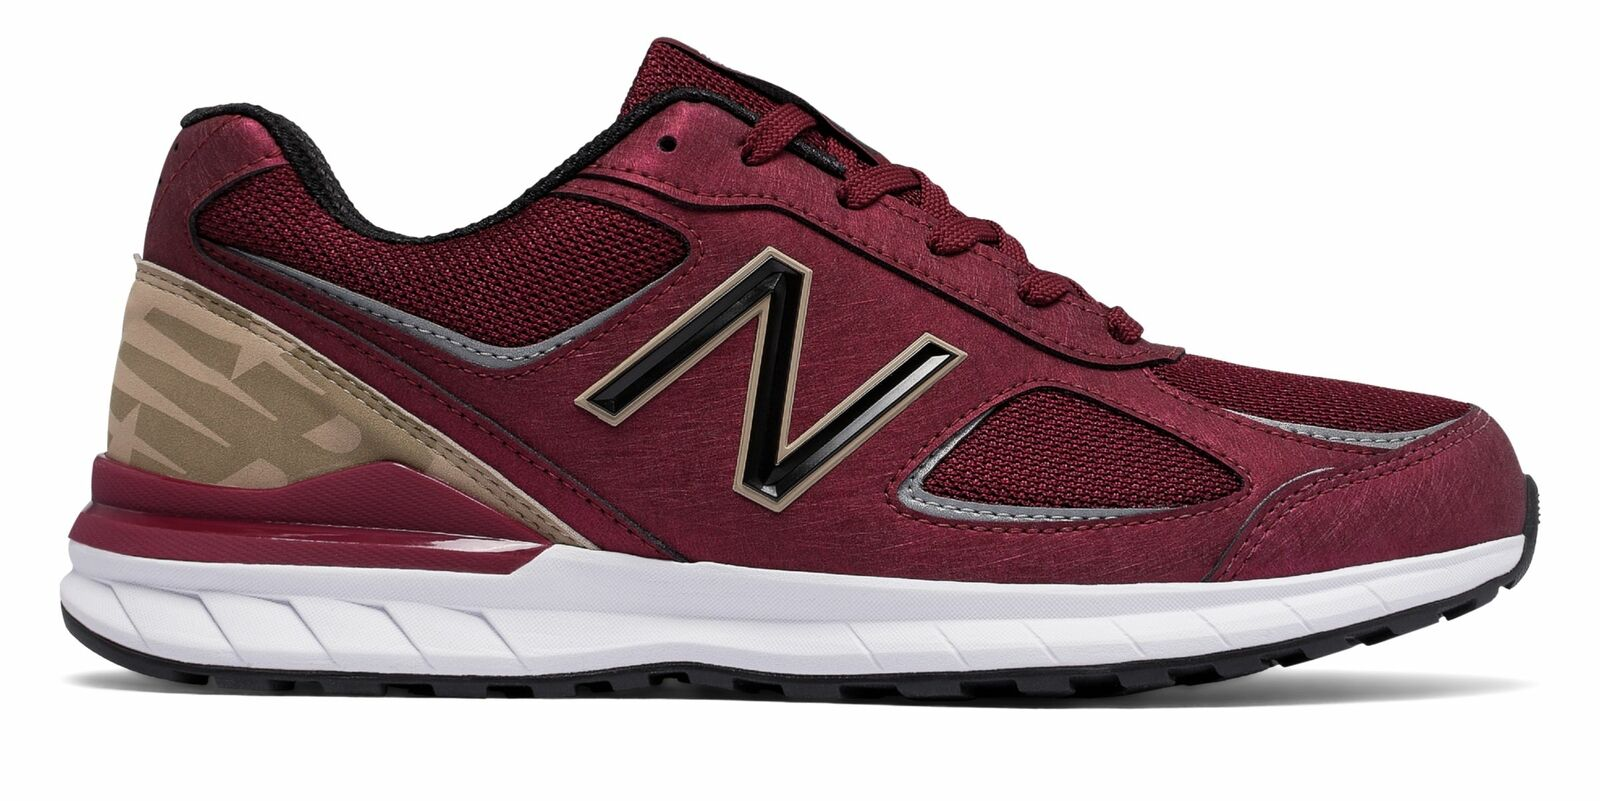 New Balance Men's 770v2 shoes Red with Black